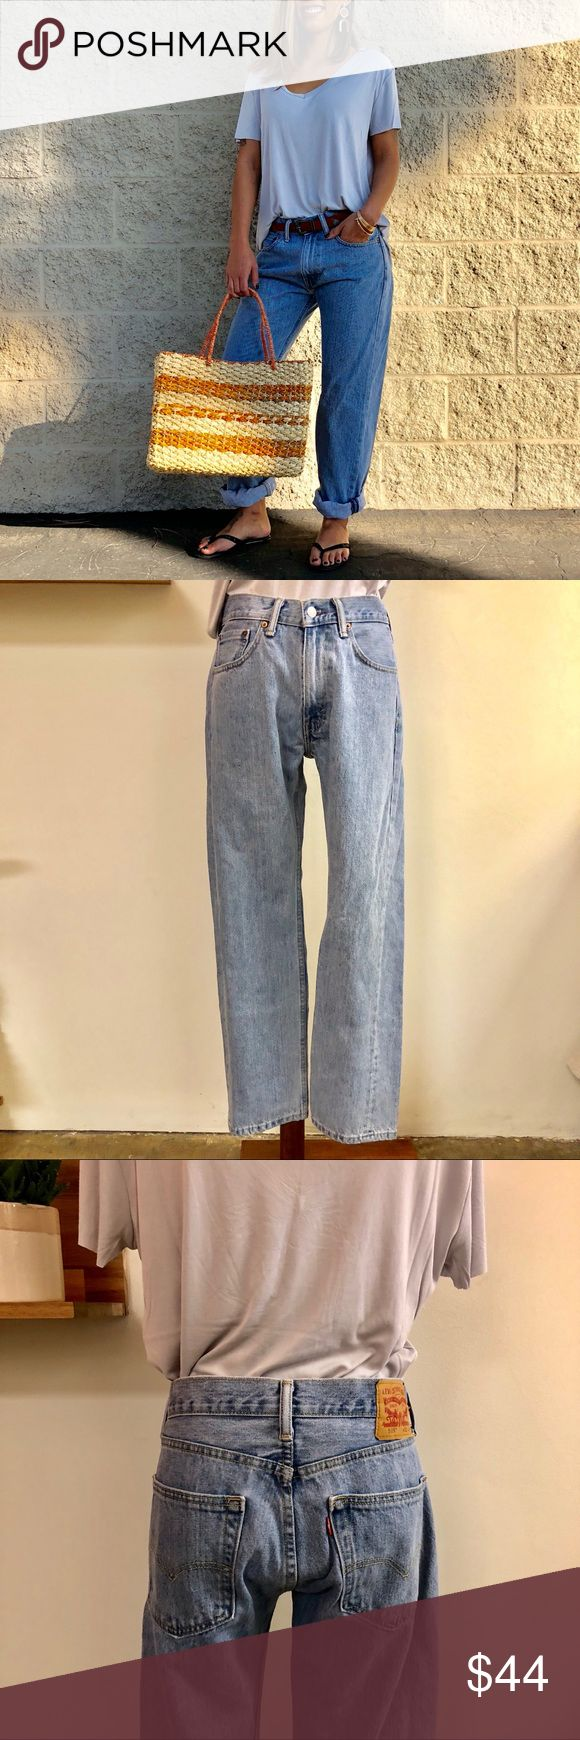 """Vintage Lt Washed Levi's 505 Jeans Vintage 90s light washed Levi 505 jeans. Size 32/30. Great boyfriend look. Excellent condition. Best fits sm/med.  *Model is 5'3"""" and wears a small. Levi's Jeans Boyfriend"""